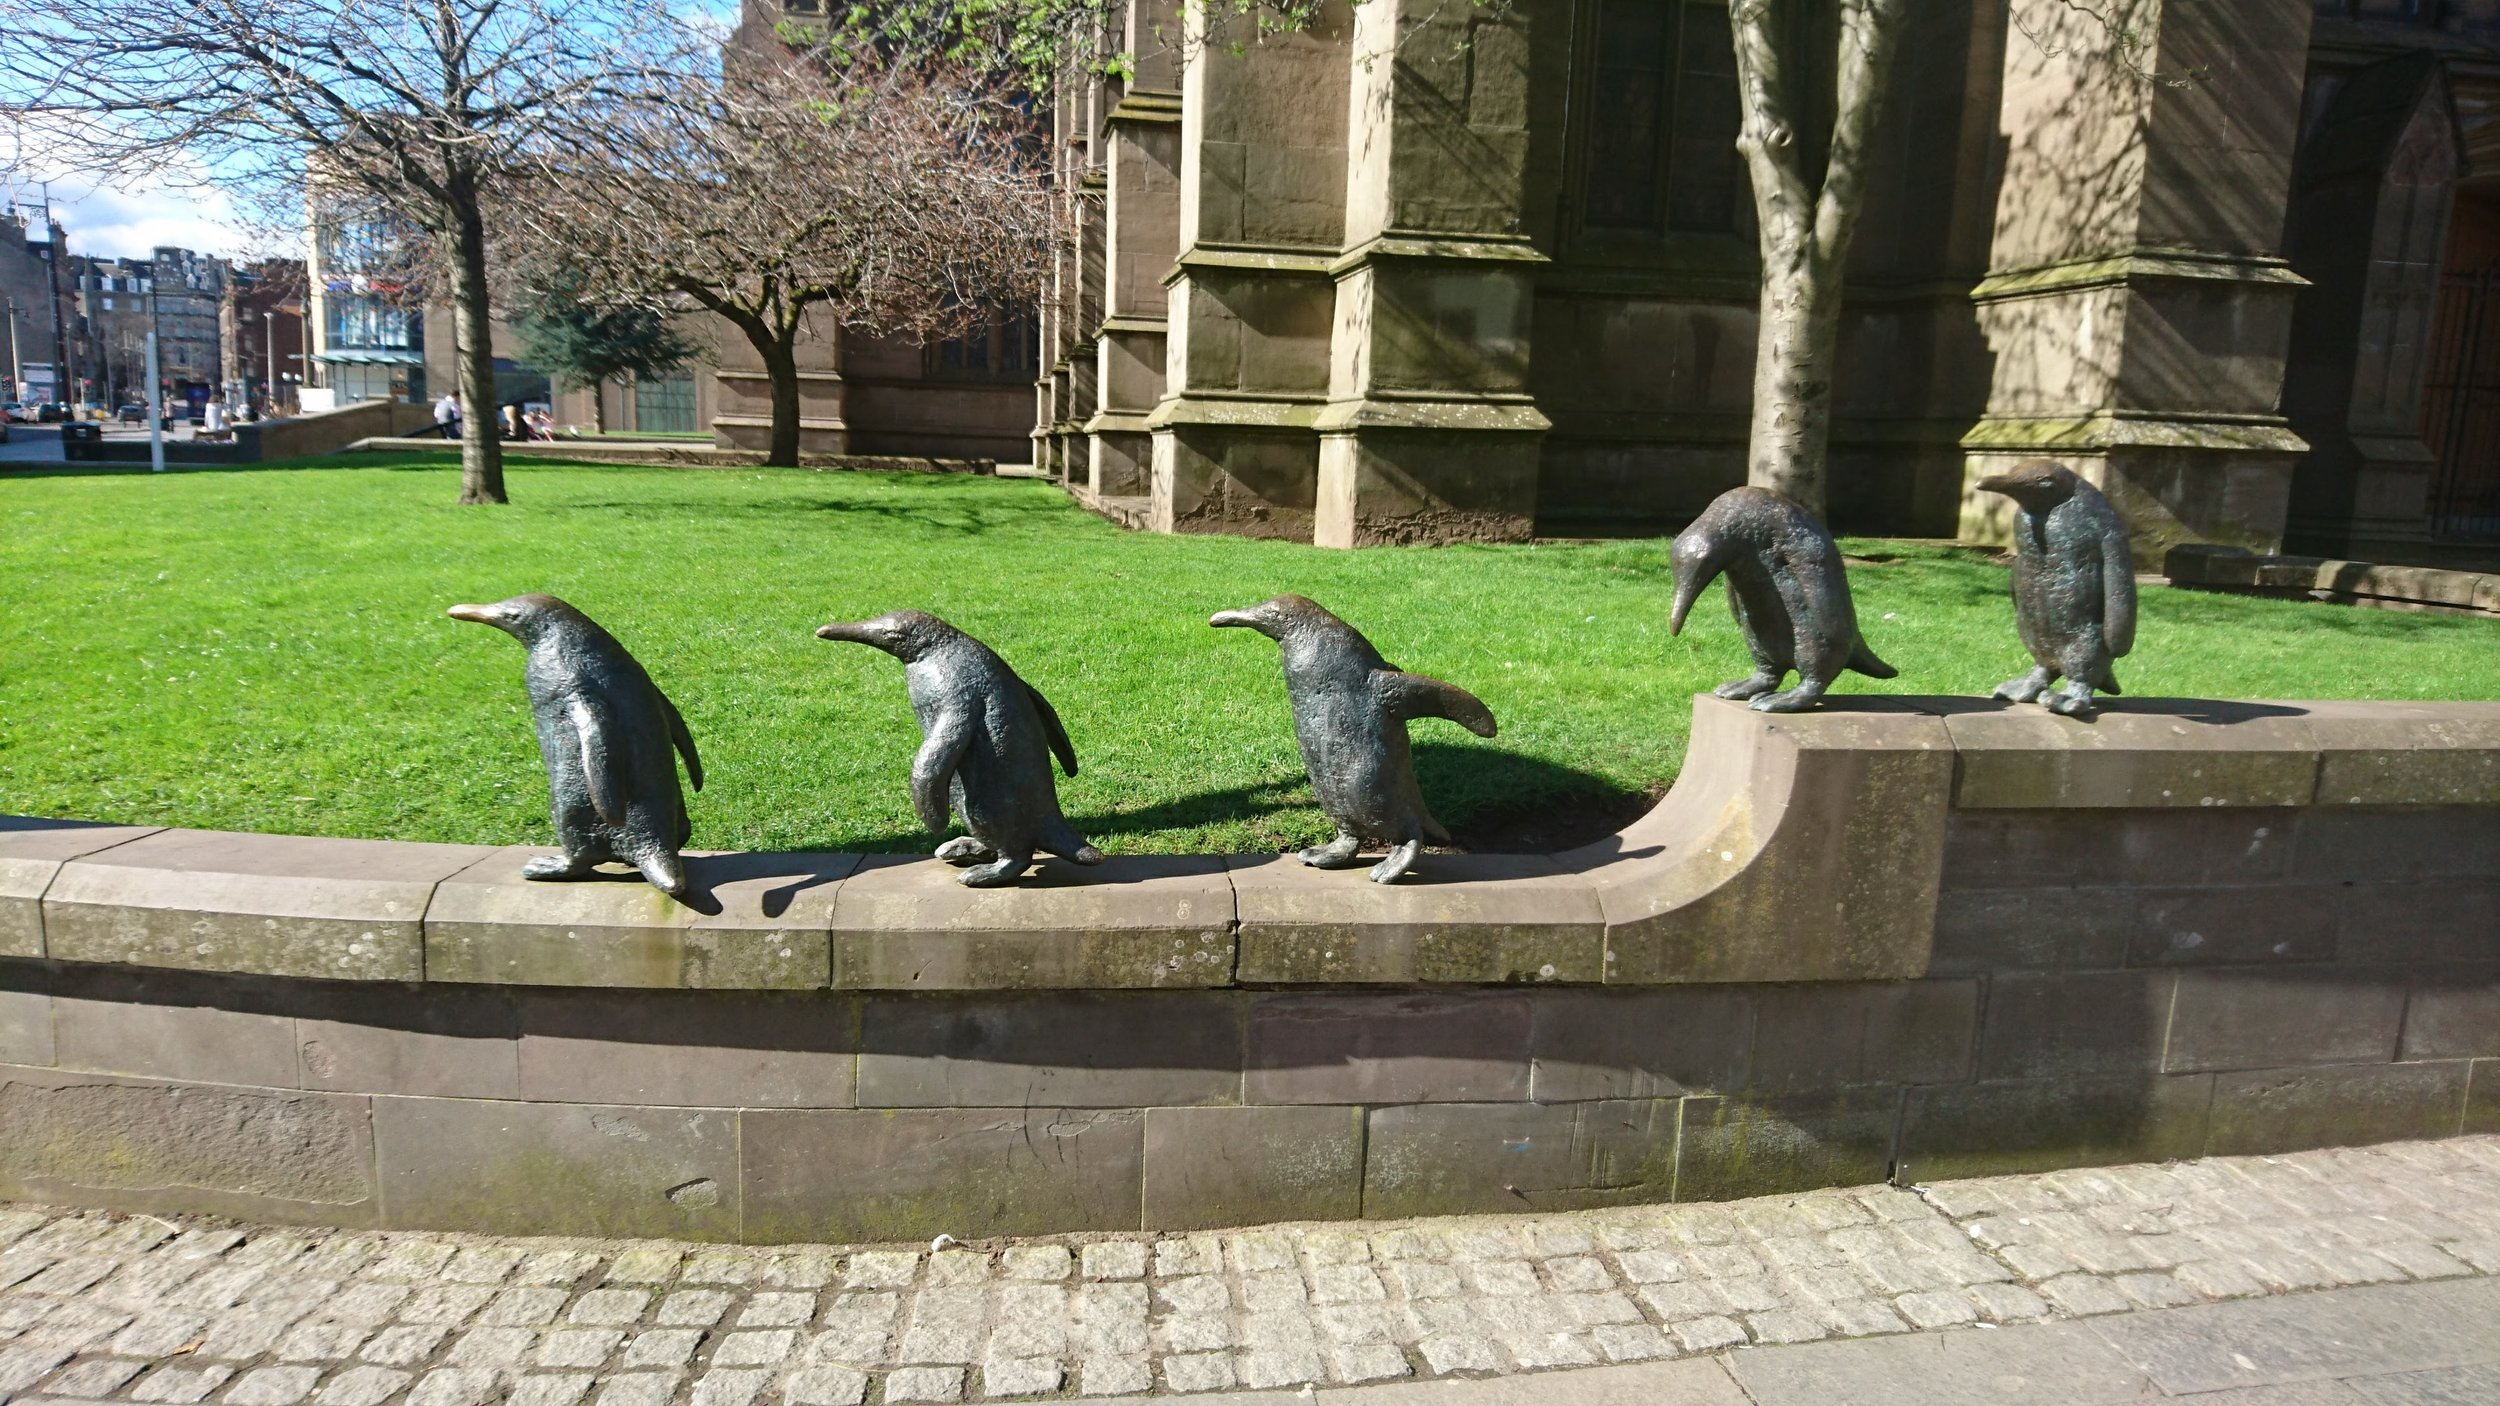 Captain Scott's Penguins strolling about town, Dundee / Jenny Eve